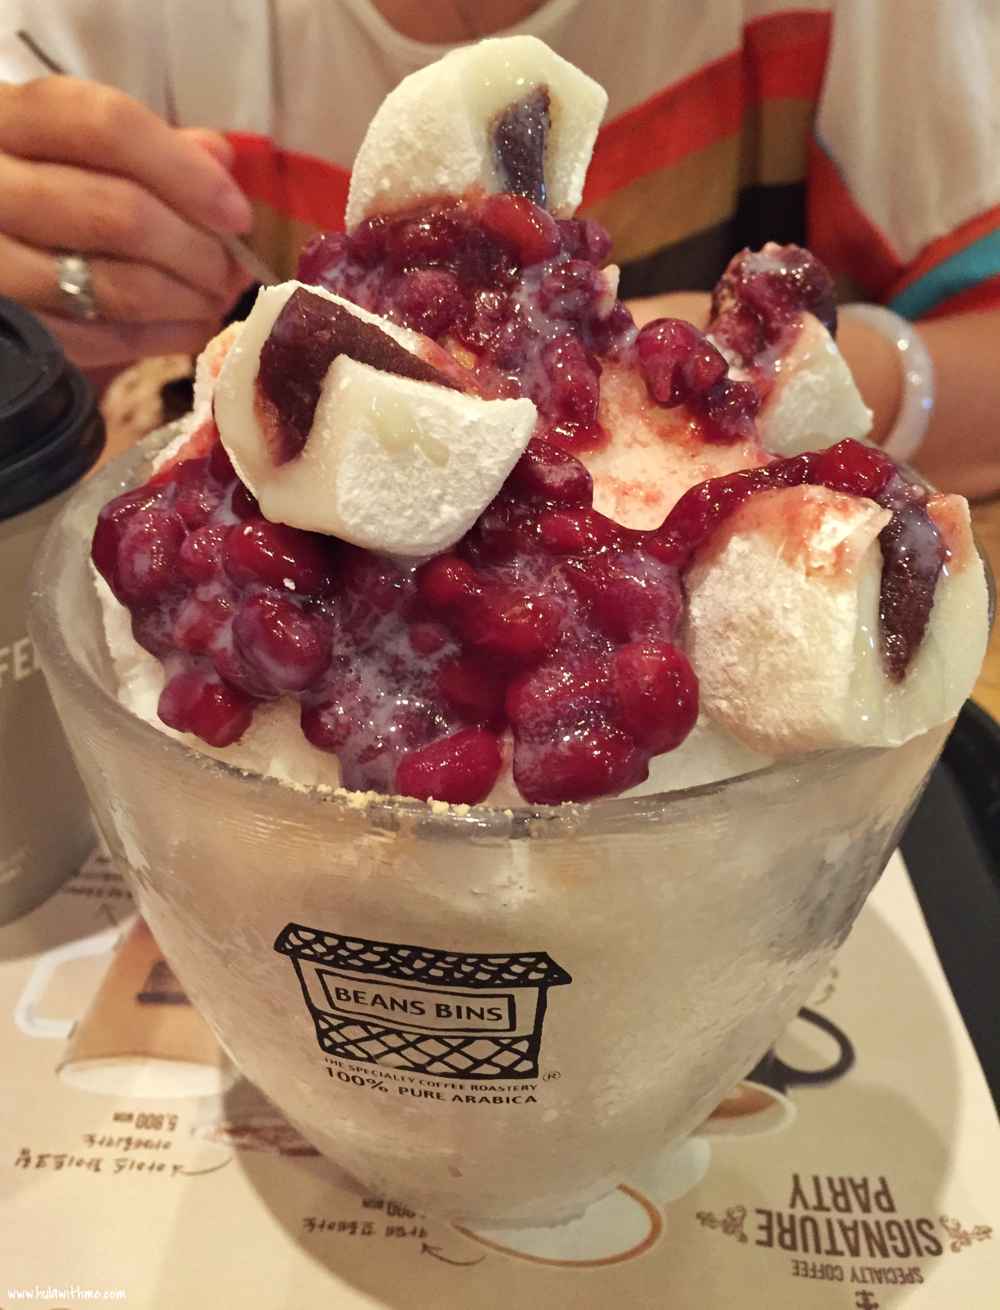 Beans Bins, a dessert and coffee place in Myeongdong, Seoul, Korea that serves giant shaved ice desserts.